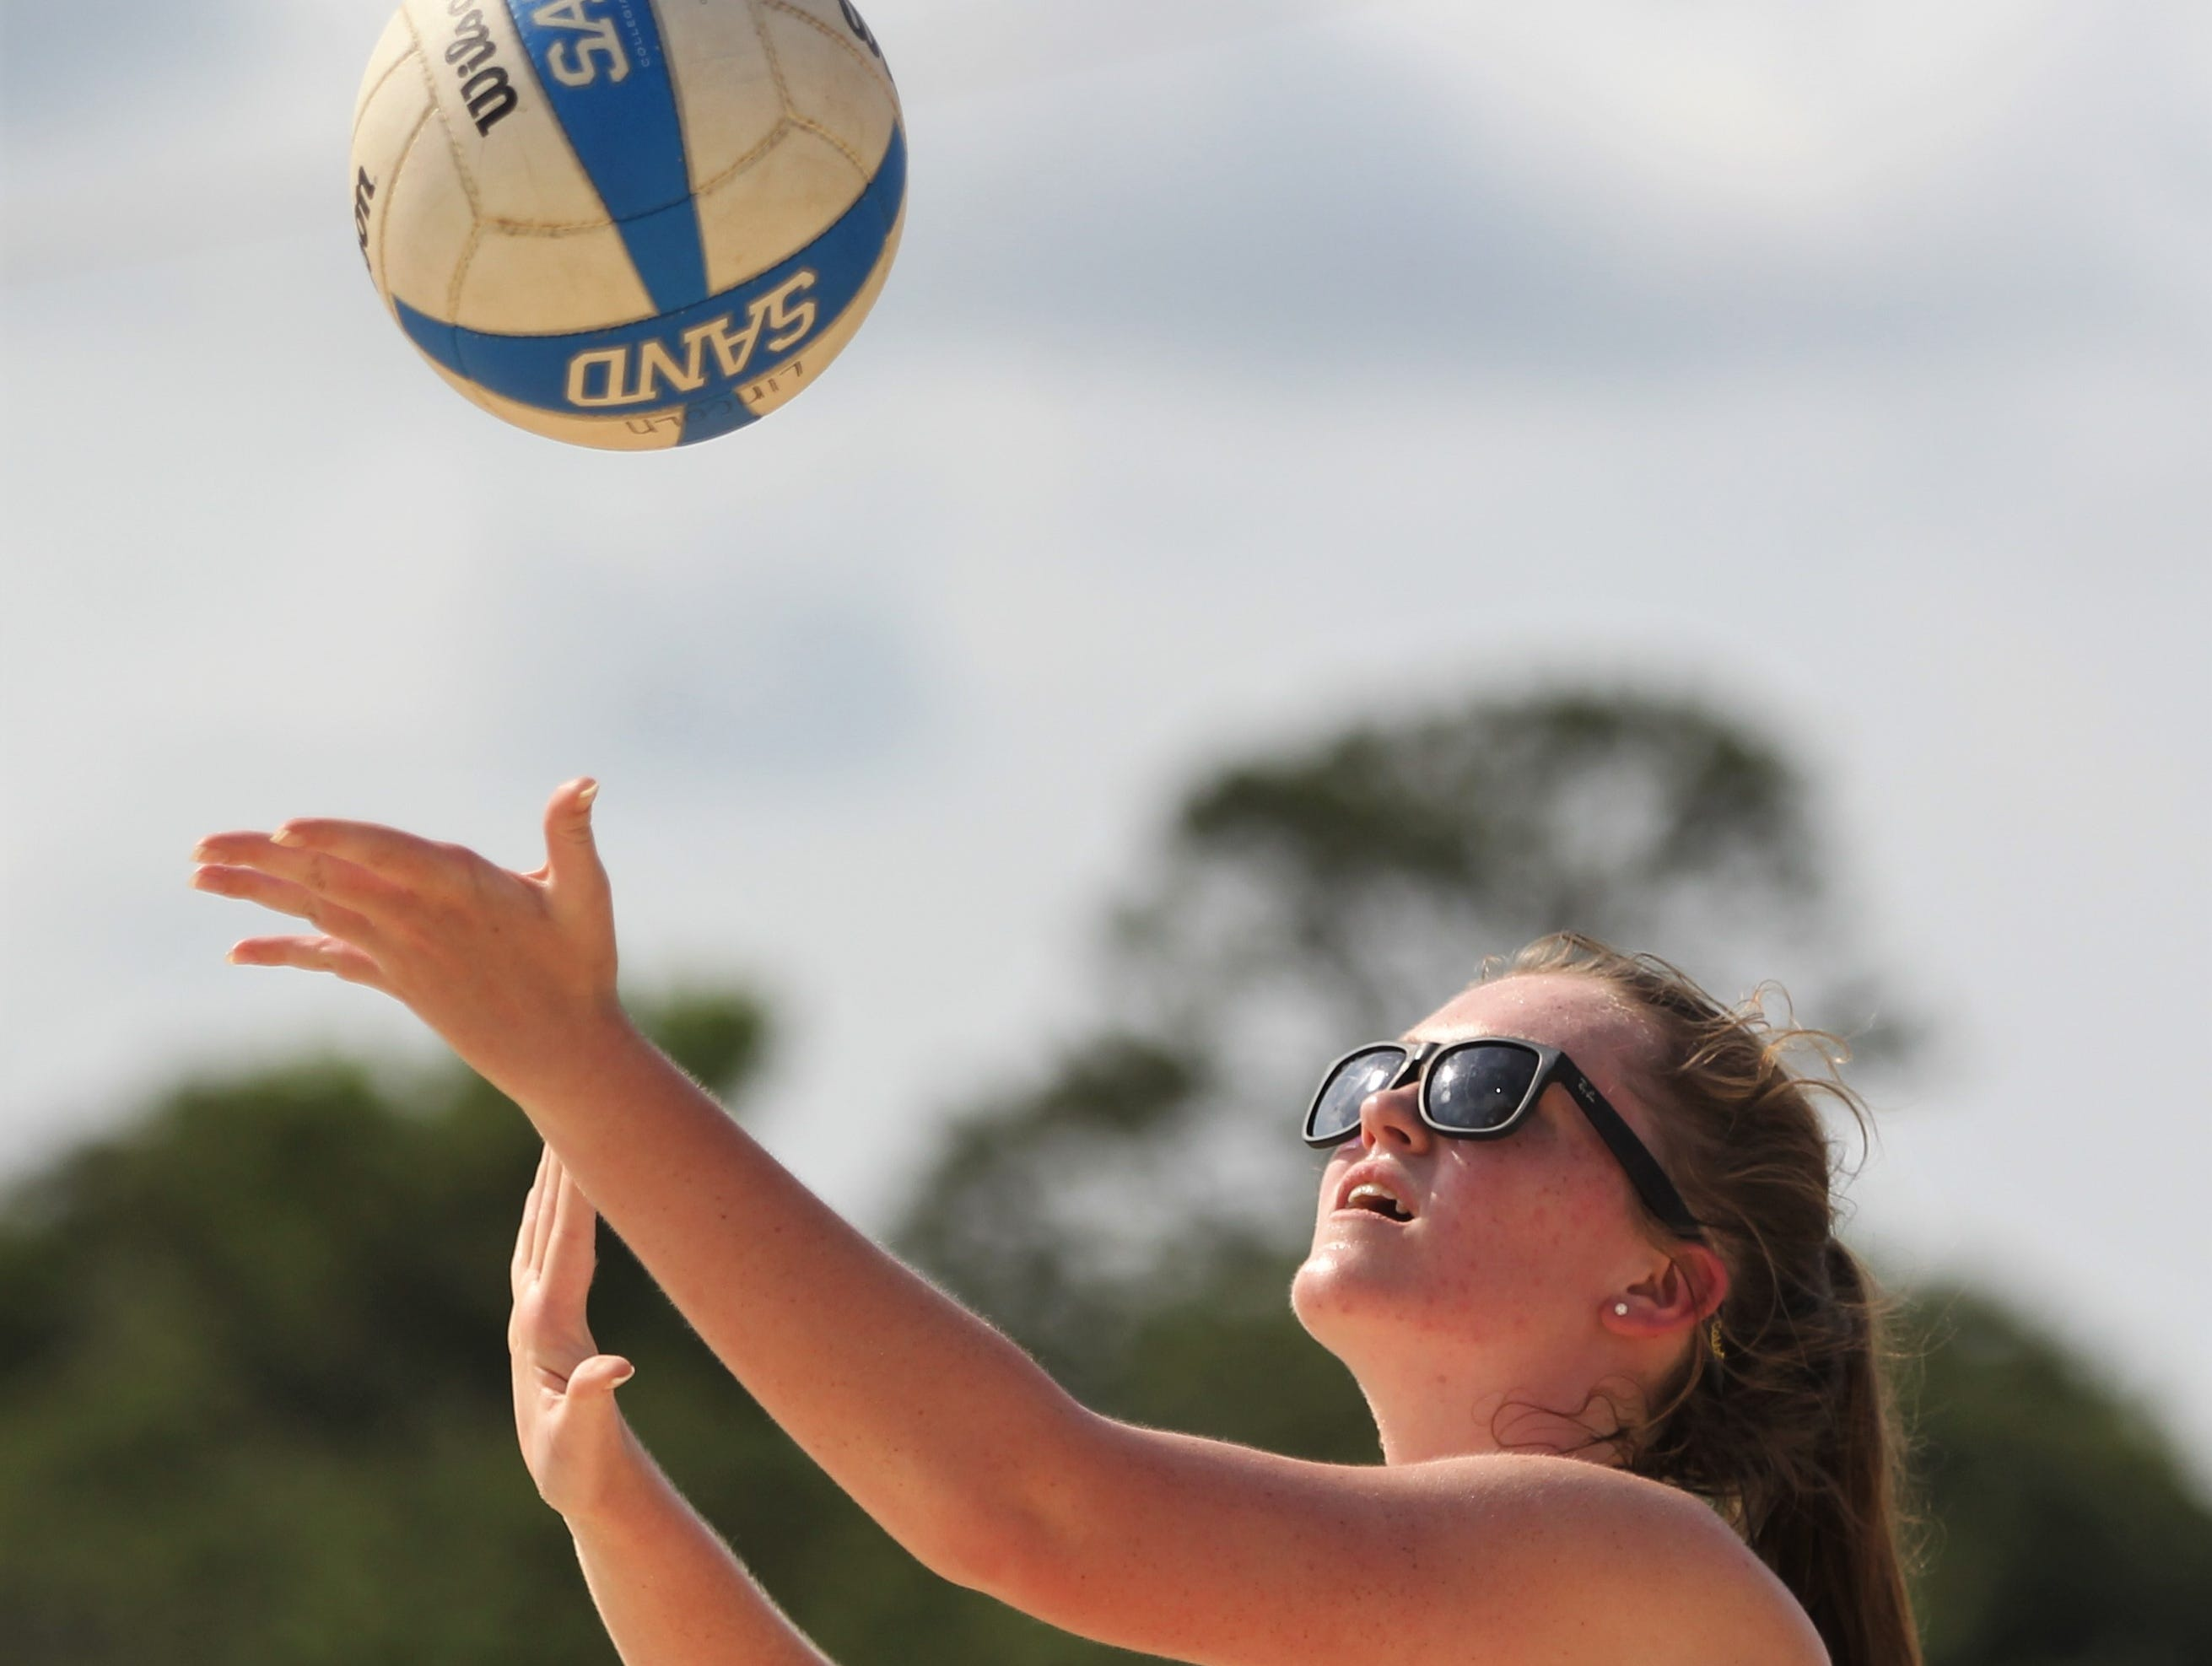 Chiles and Lincoln play in the 2019 Tallahassee high school beach volleyball championship at Tom Brown Park on May 9, 2019. The Timberwolves swept the Trojans 5-0 to capture their first title.